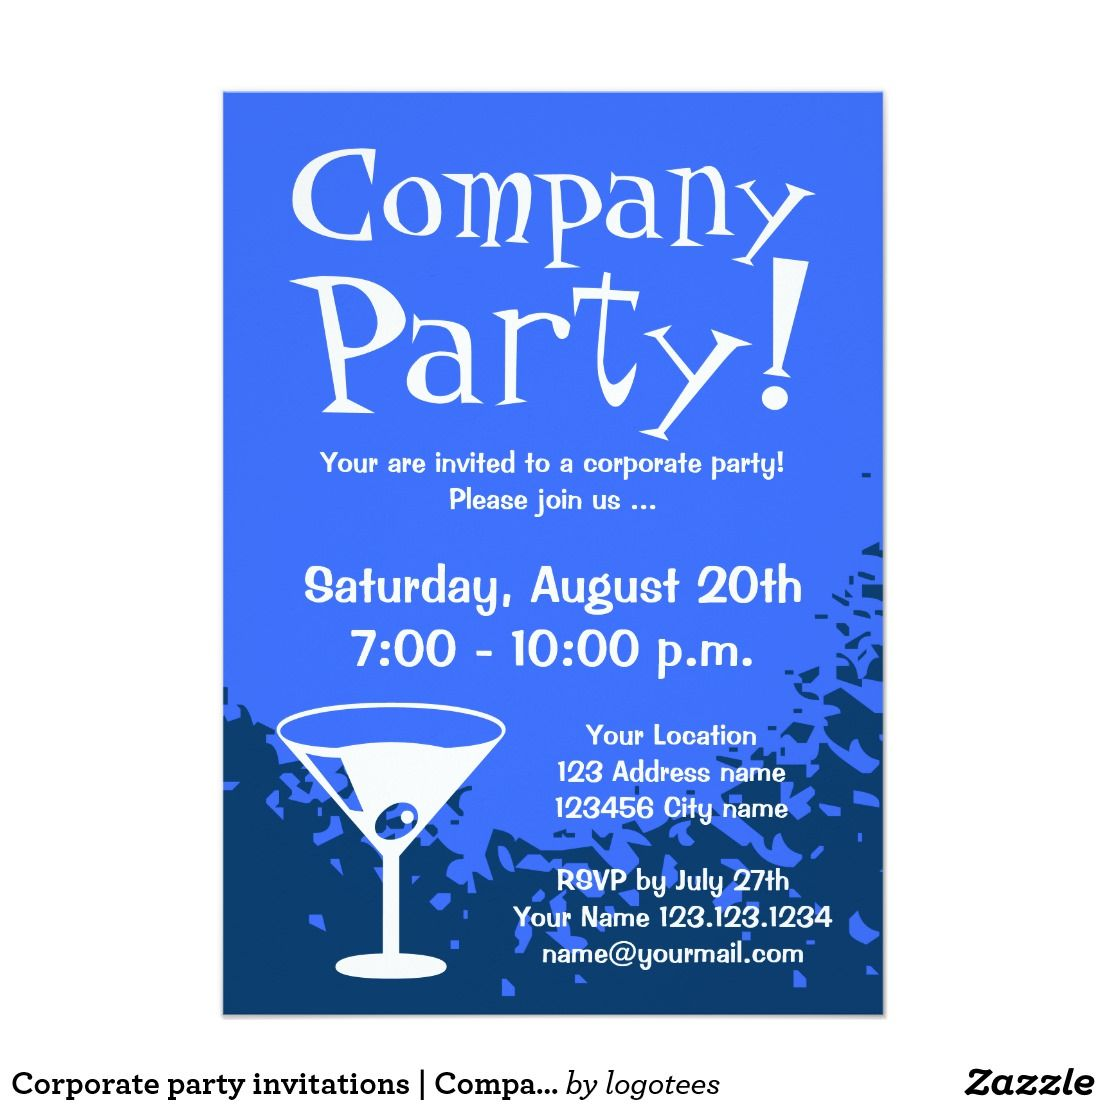 Corporate party invitations  Company invites  Zazzle.com